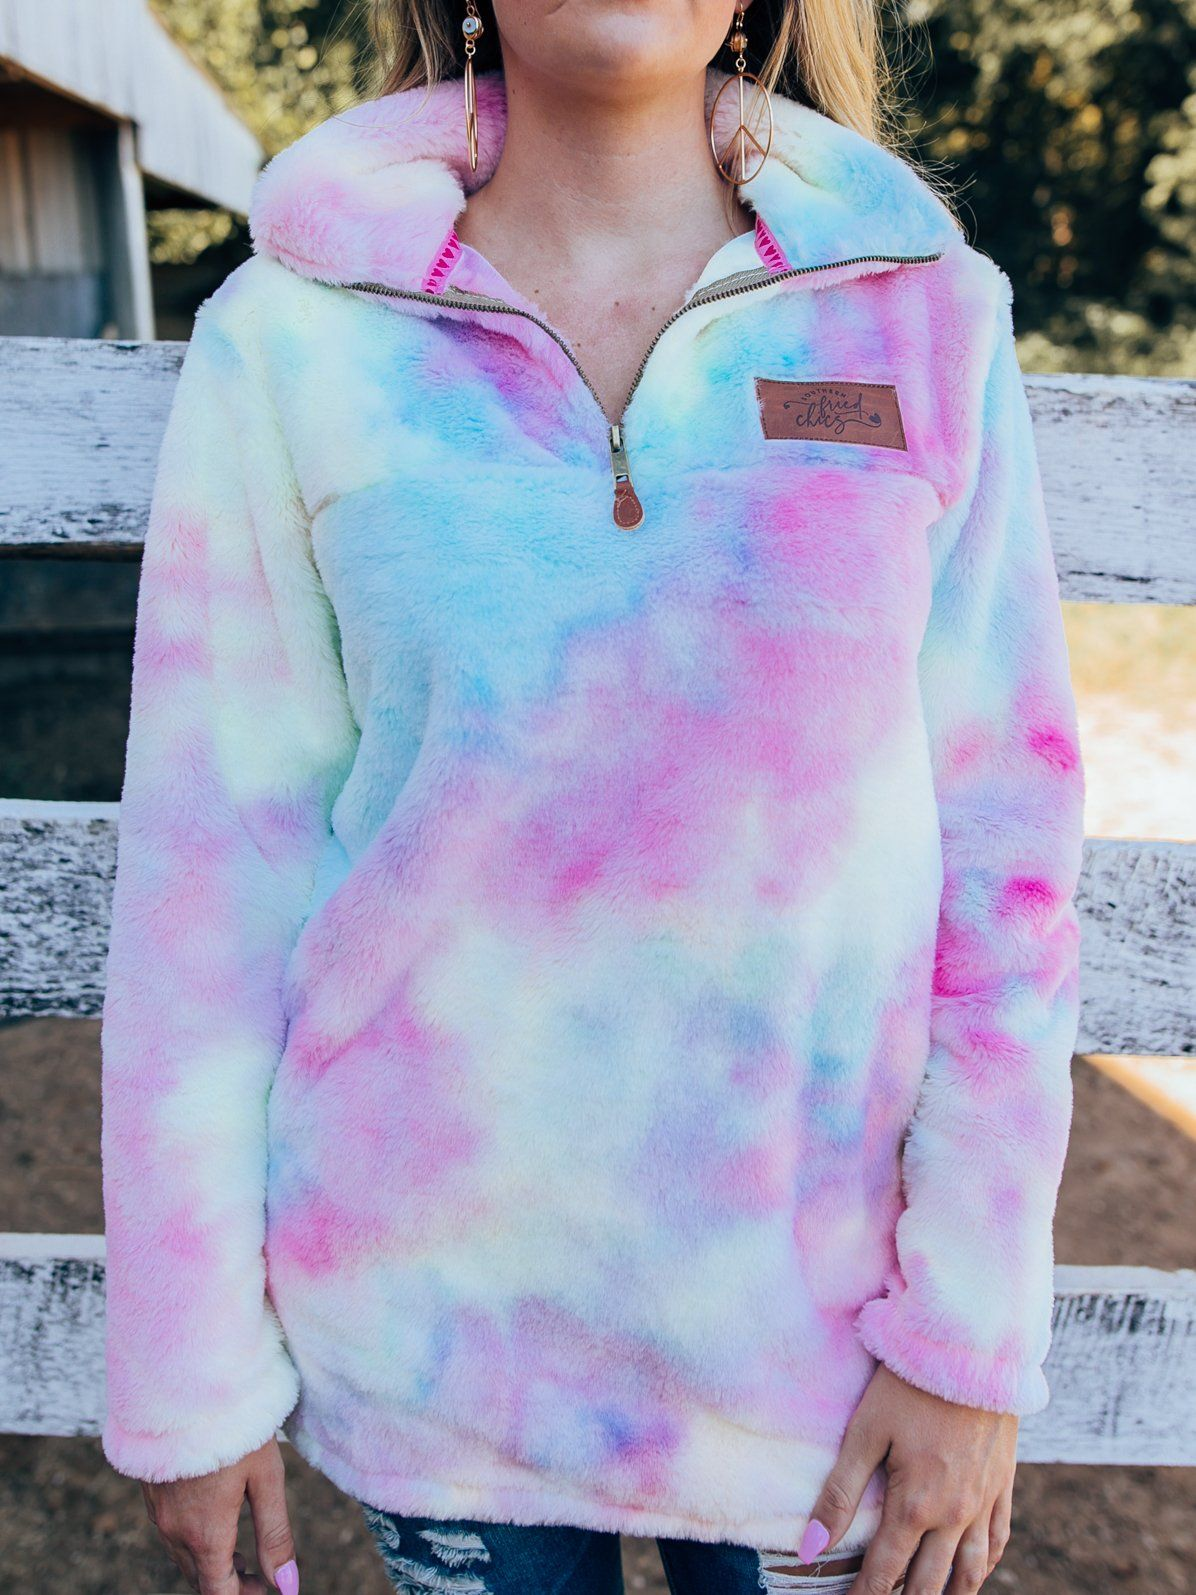 Cotton Candy Tie Dye Sherpa In 2021 Tie Dye Candy Clothes Cotton Candy [ 1595 x 1196 Pixel ]